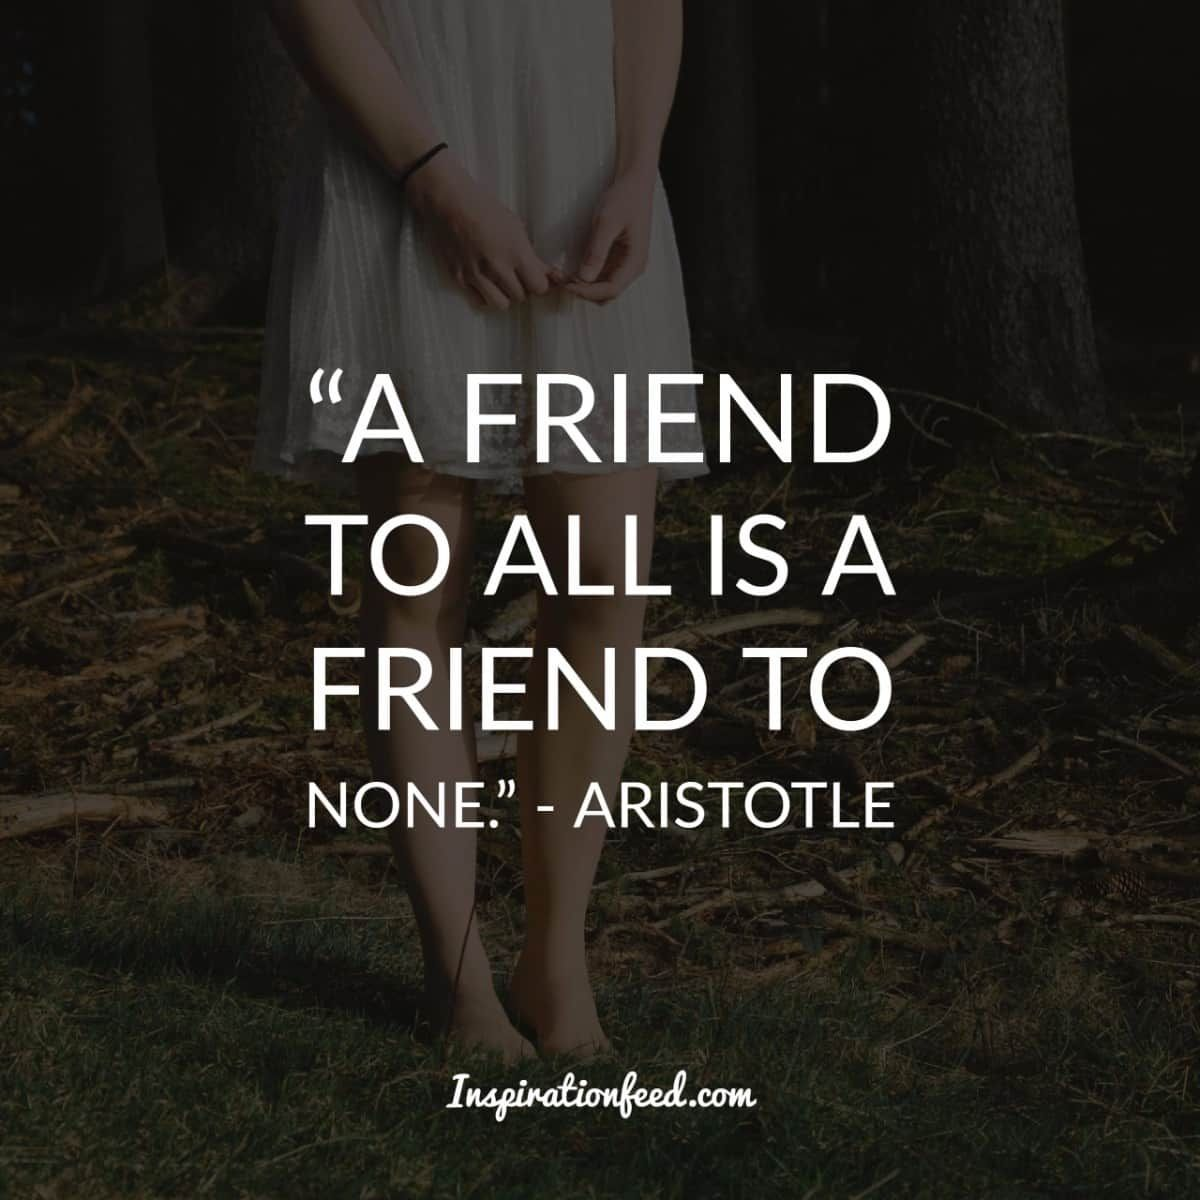 Deep Quotes About Friendship: 40 Friendship Quotes To Celebrate Your Friends